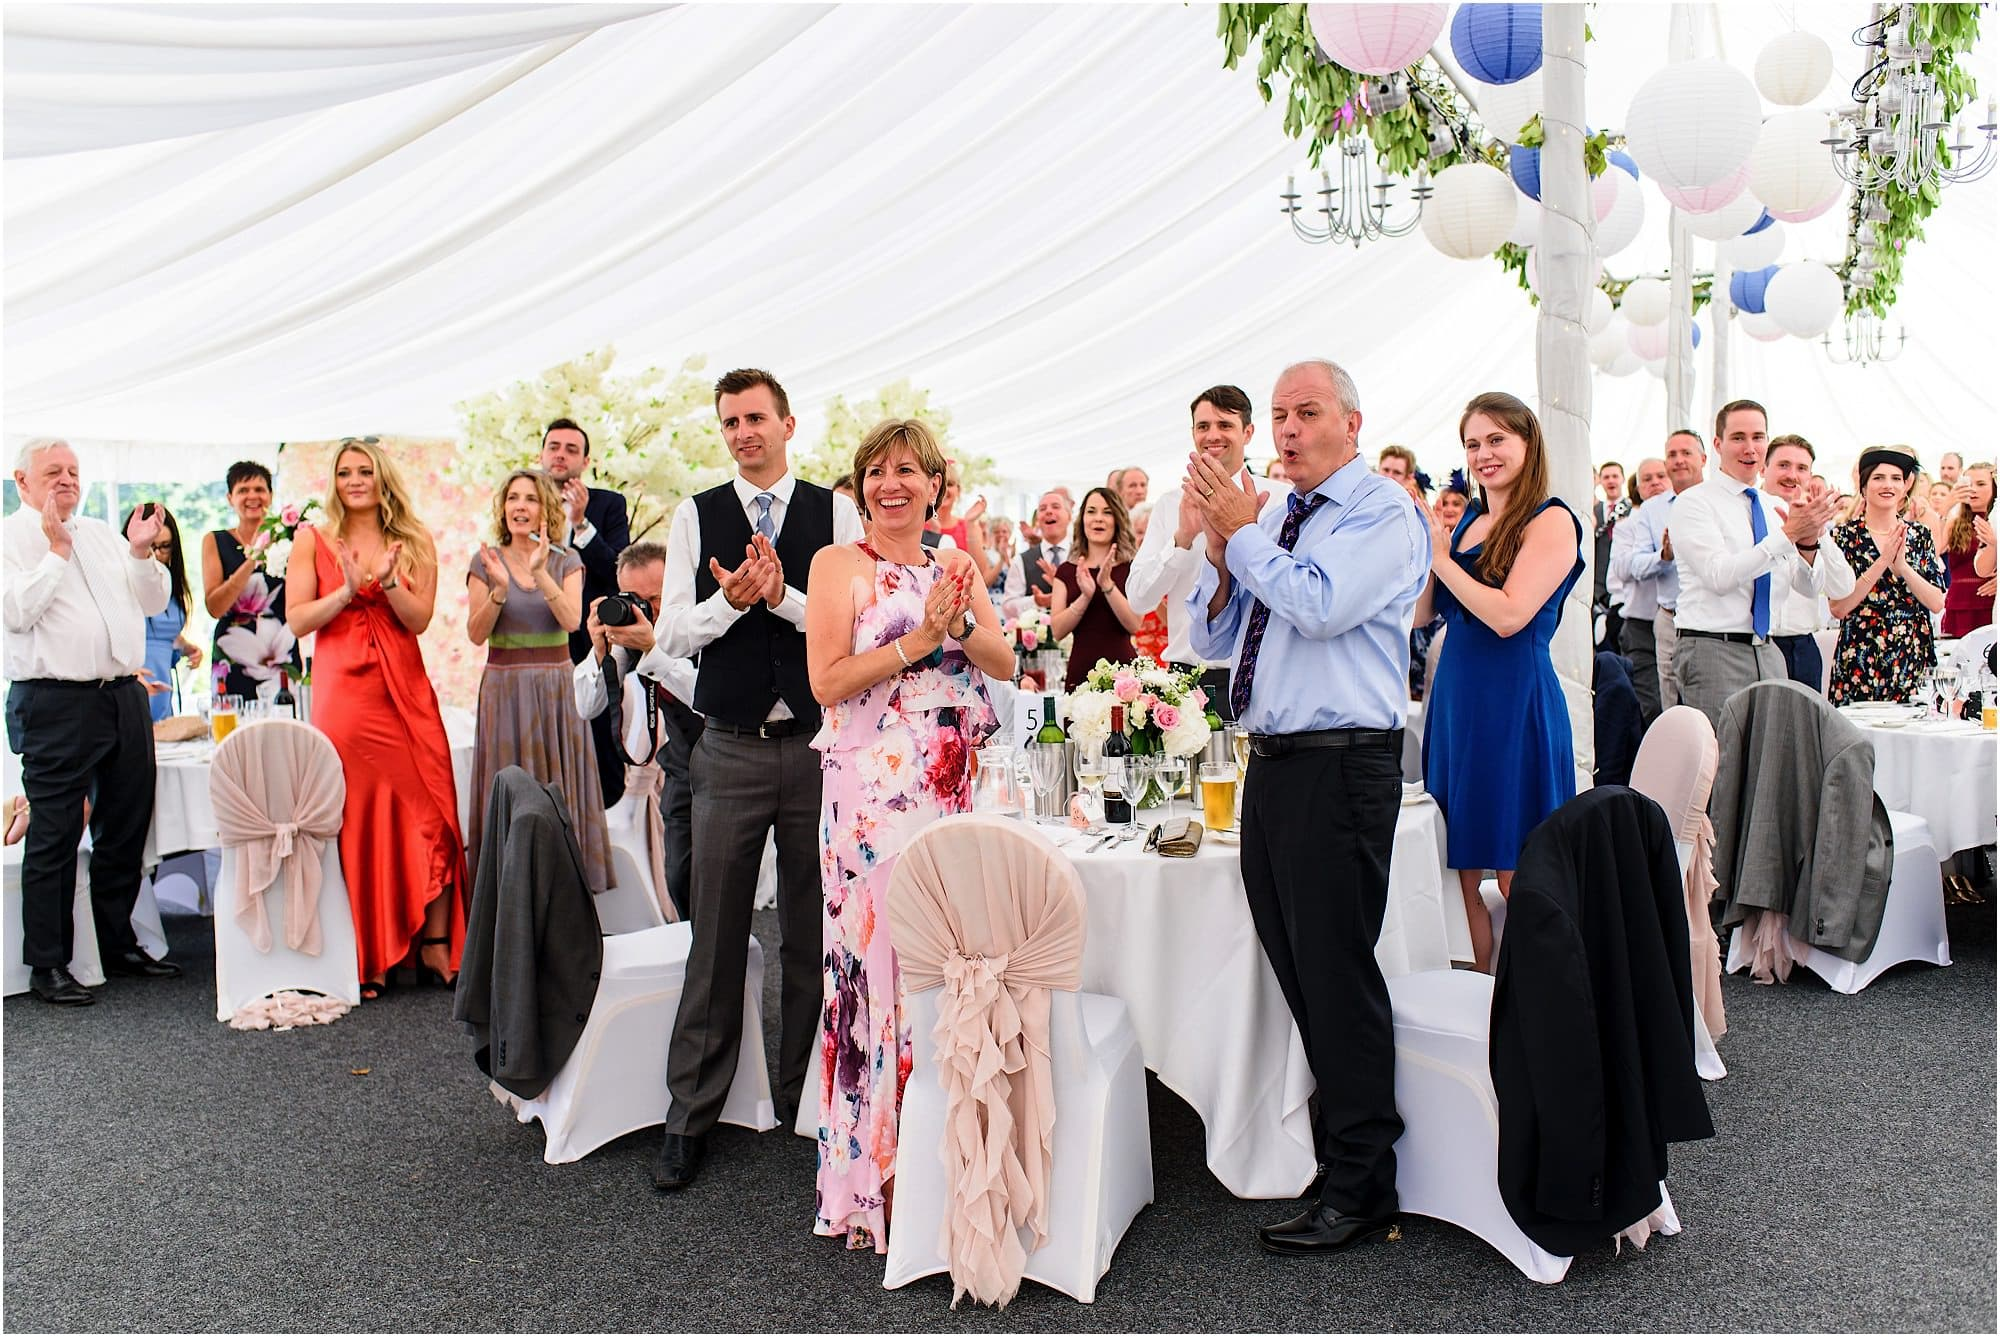 Guests welcoming the bride and groom